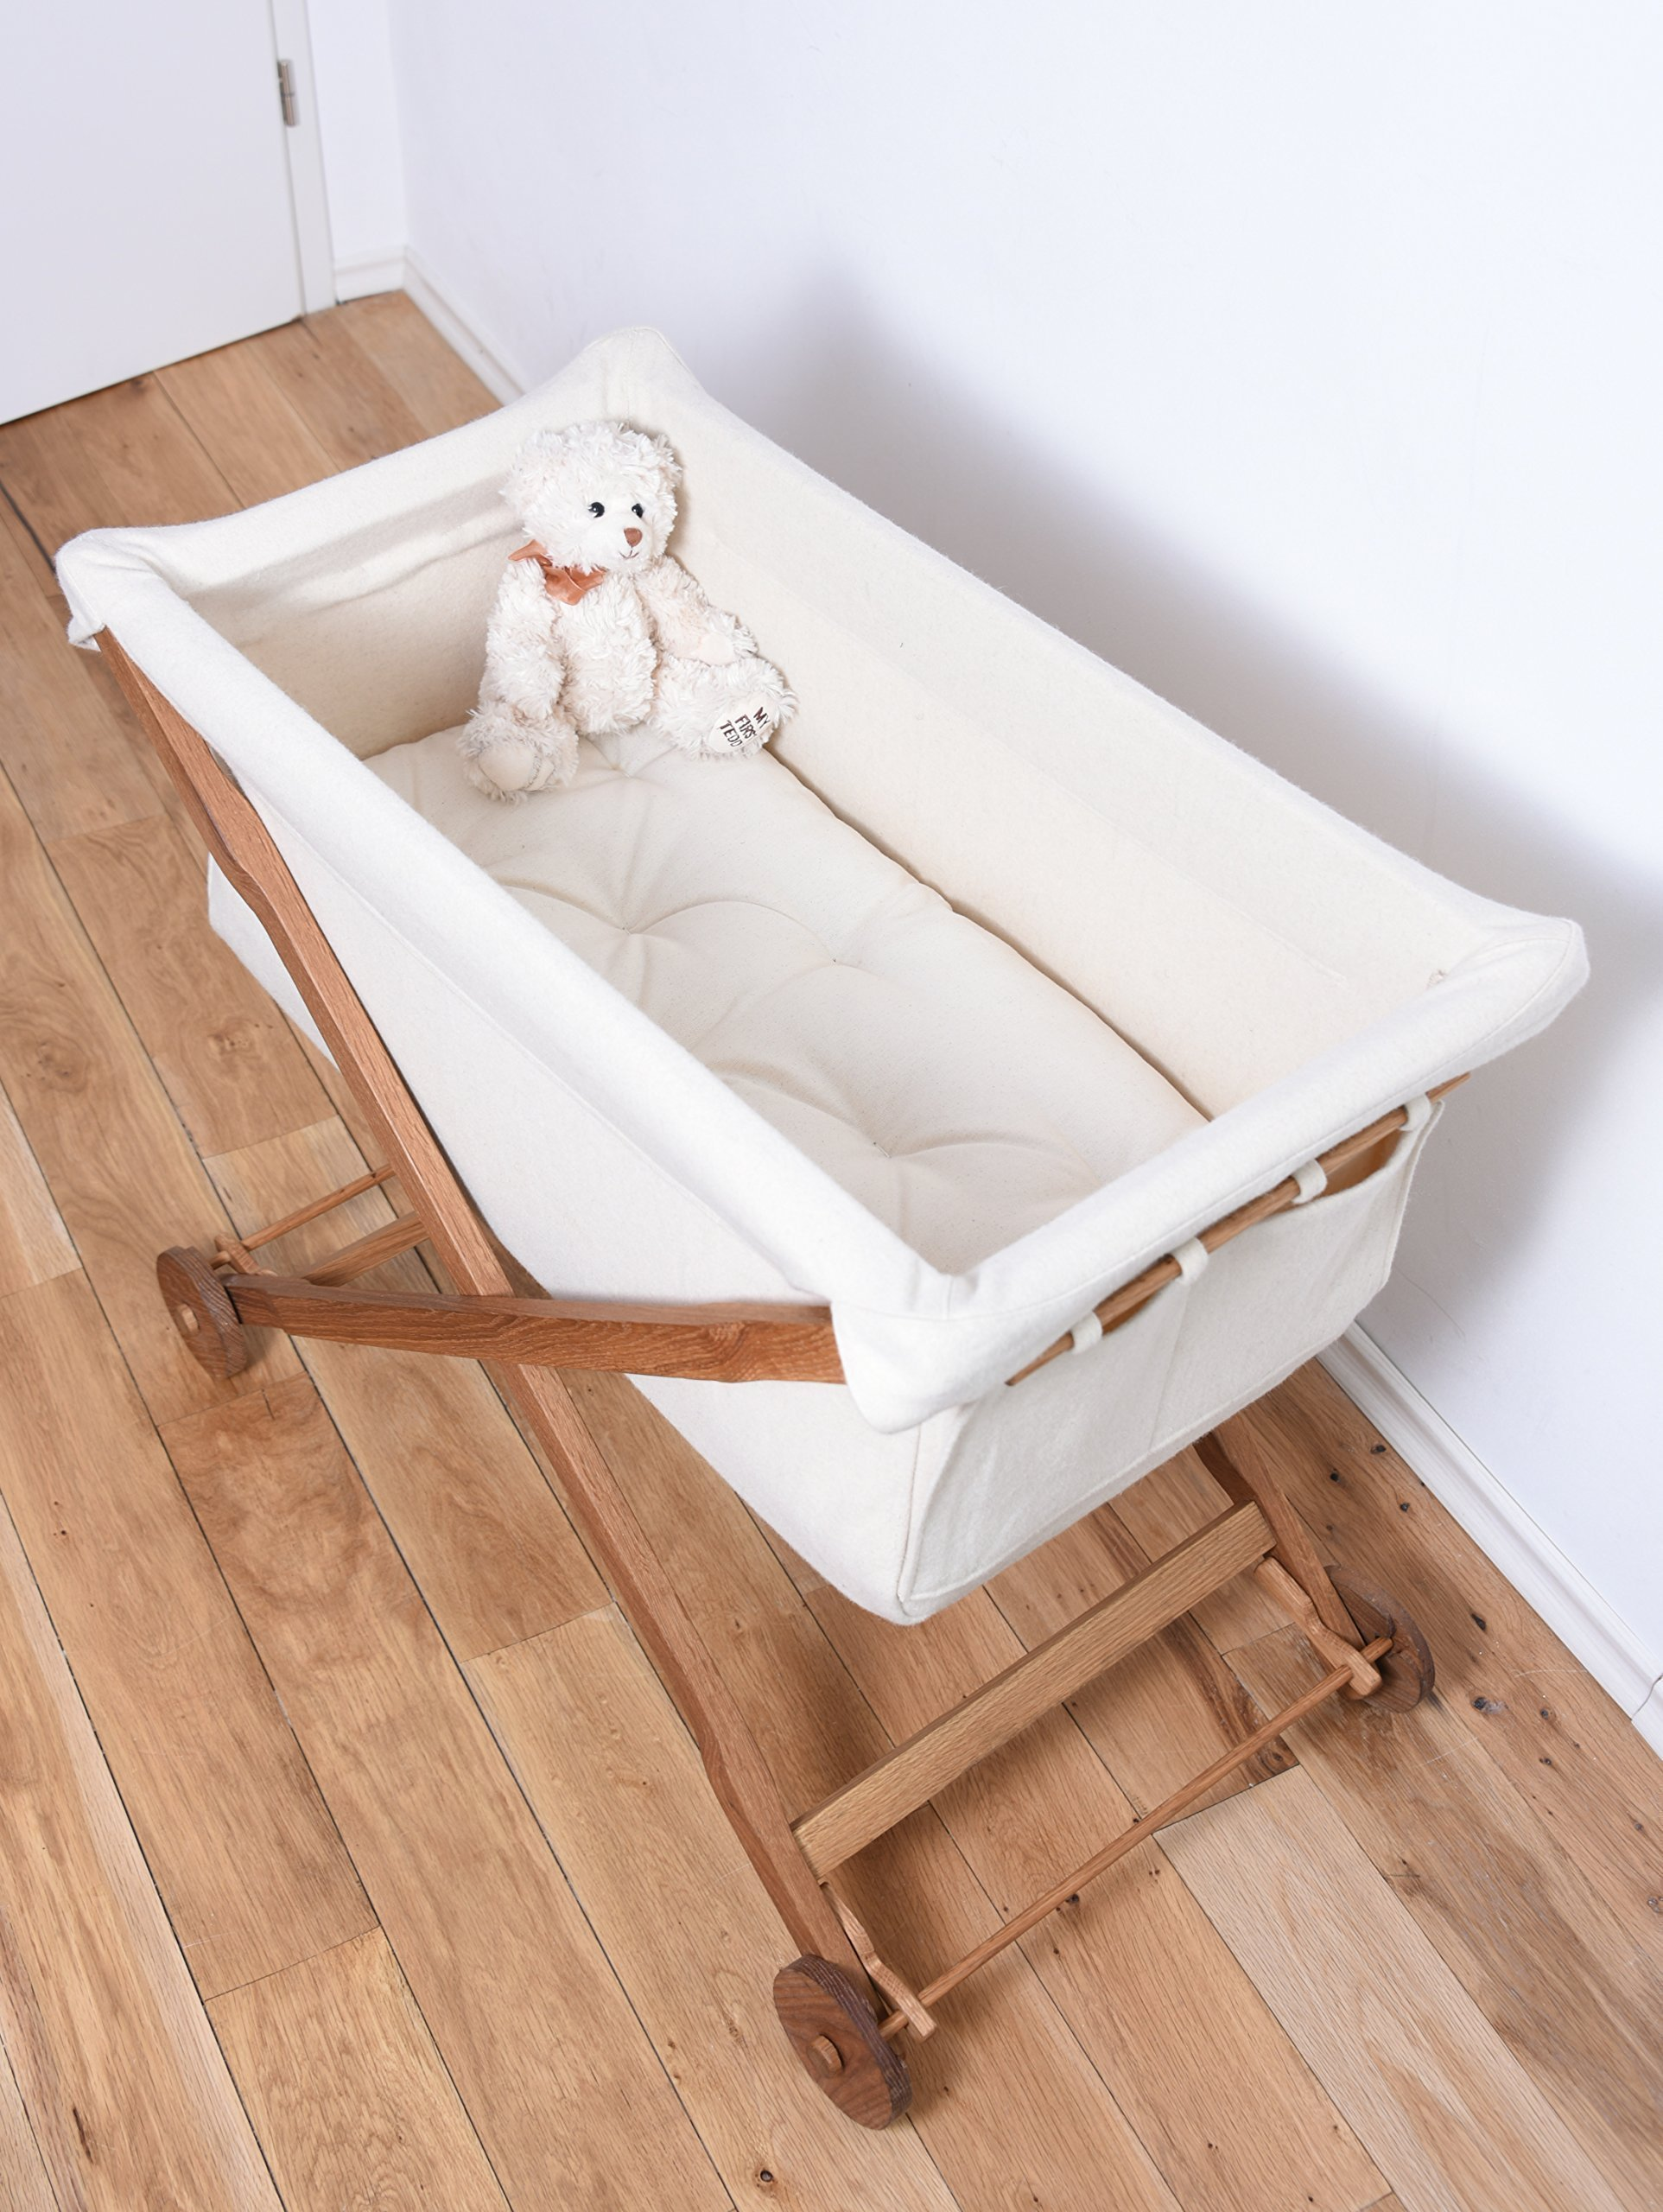 KOOTACRIB Baby's First Bed Made Entirely of Oak Wood and Bassinet of Natural Wool / Wool Stuffed Mattress Included